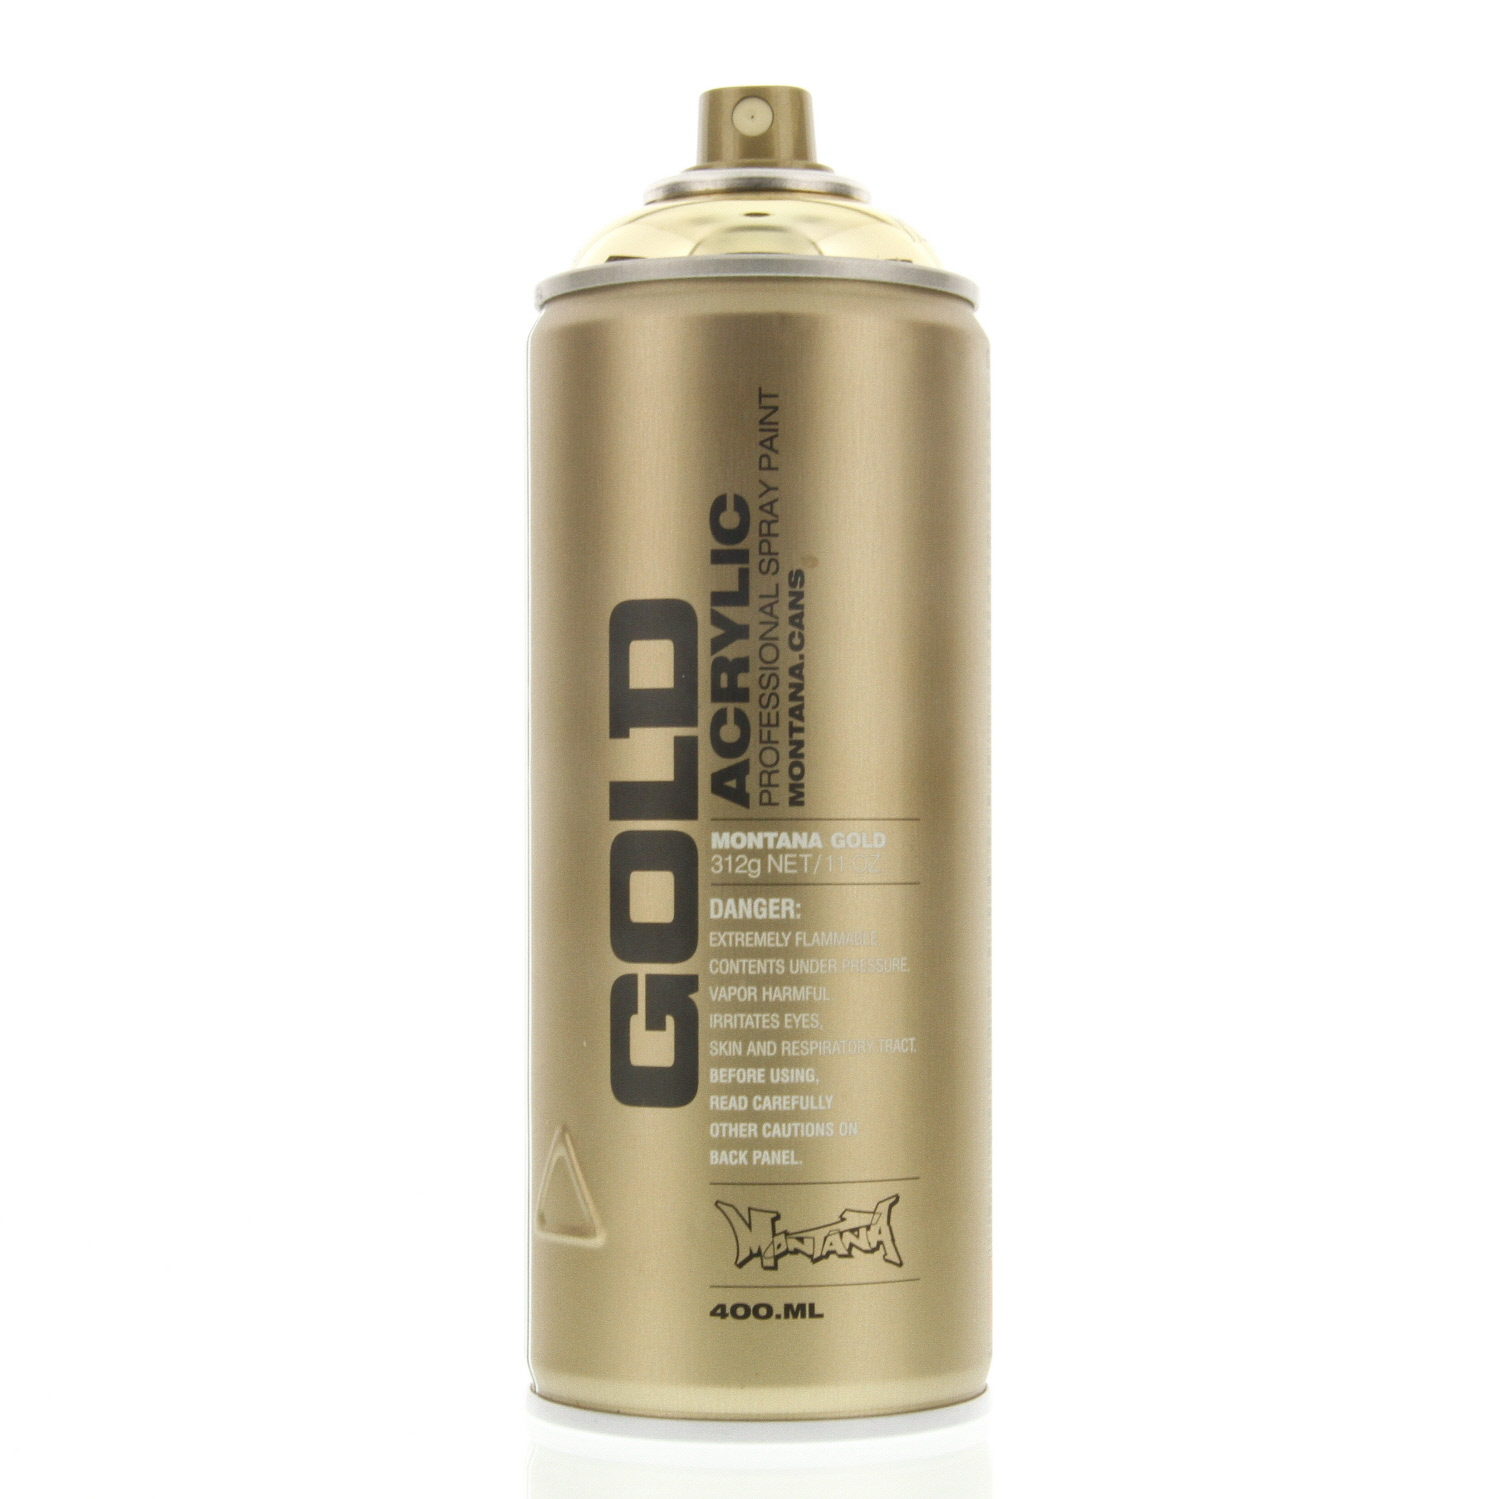 Montana gold acrylic spray paint goldchrome m3000 urban art 1 can ebay Paint with spray can